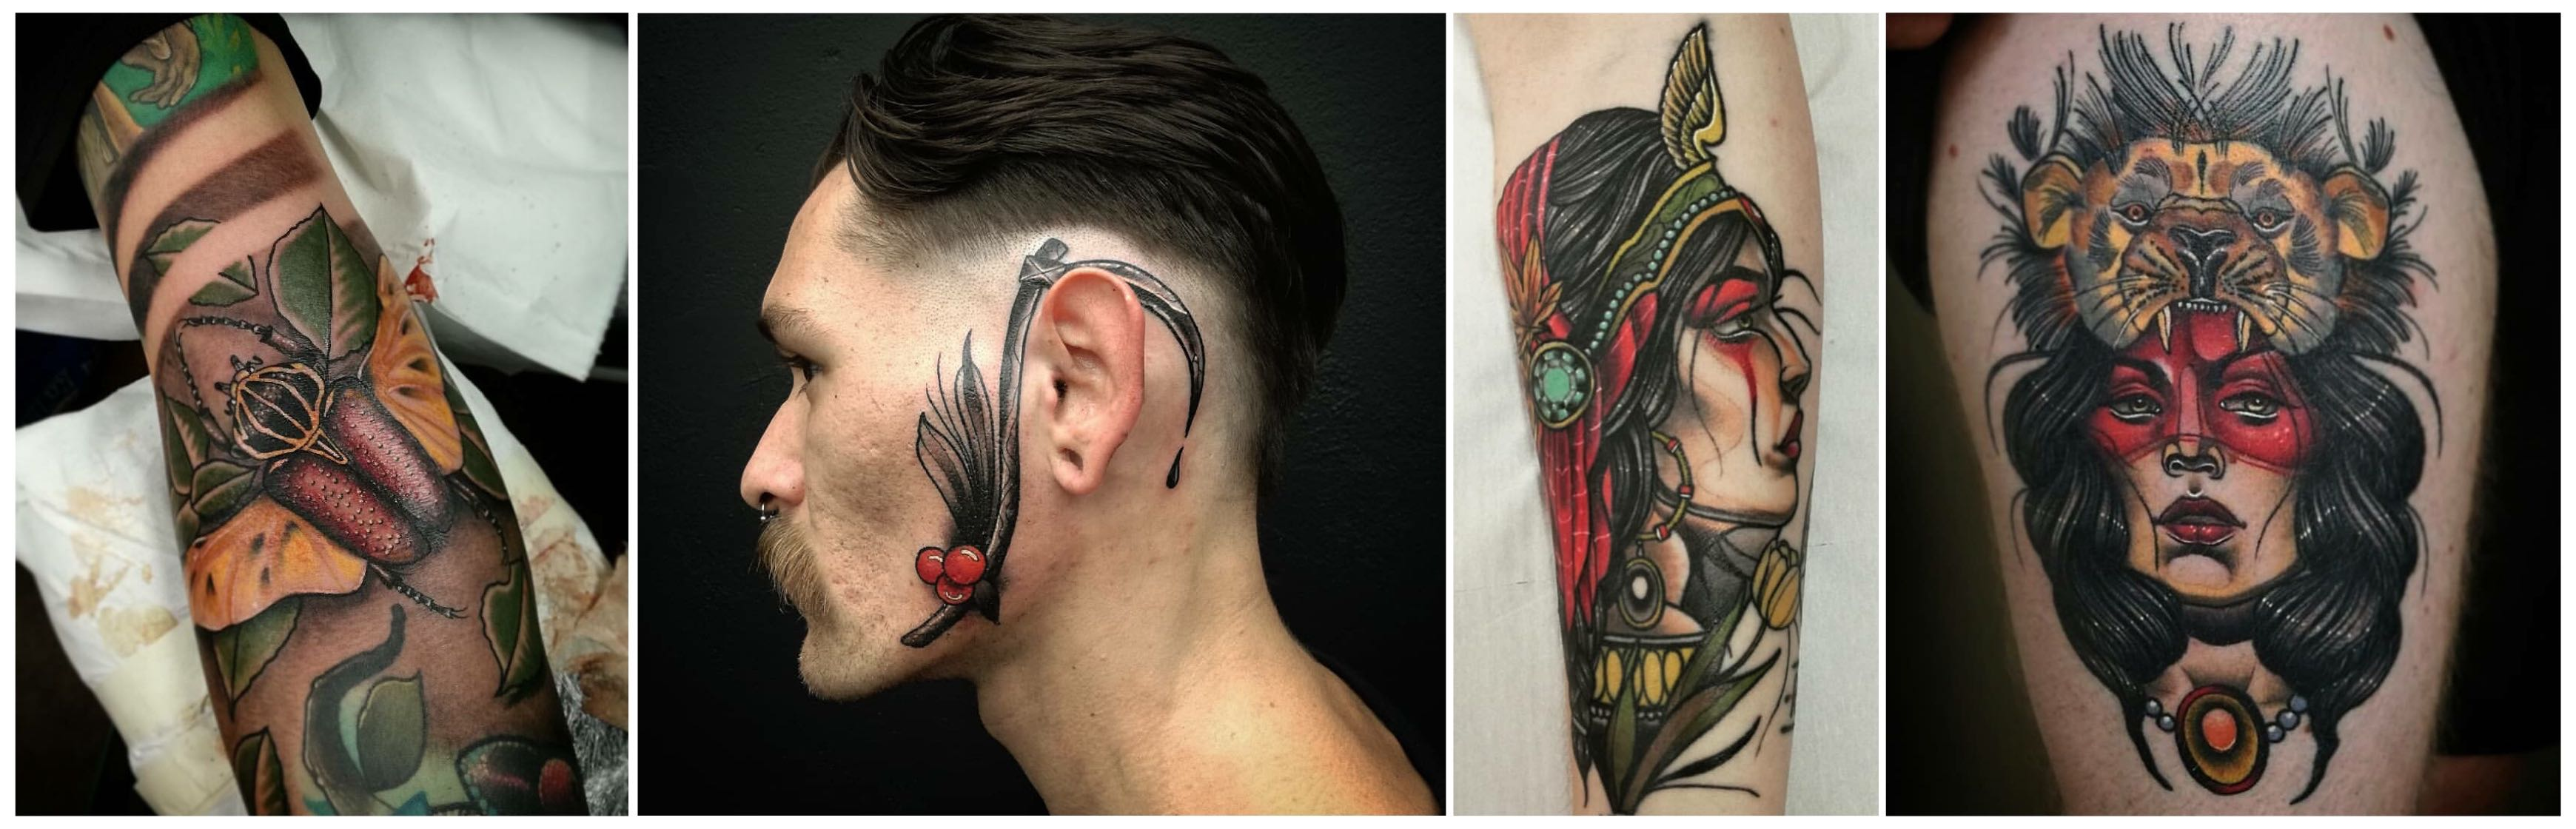 A selection of tattoos by Phillip Wells